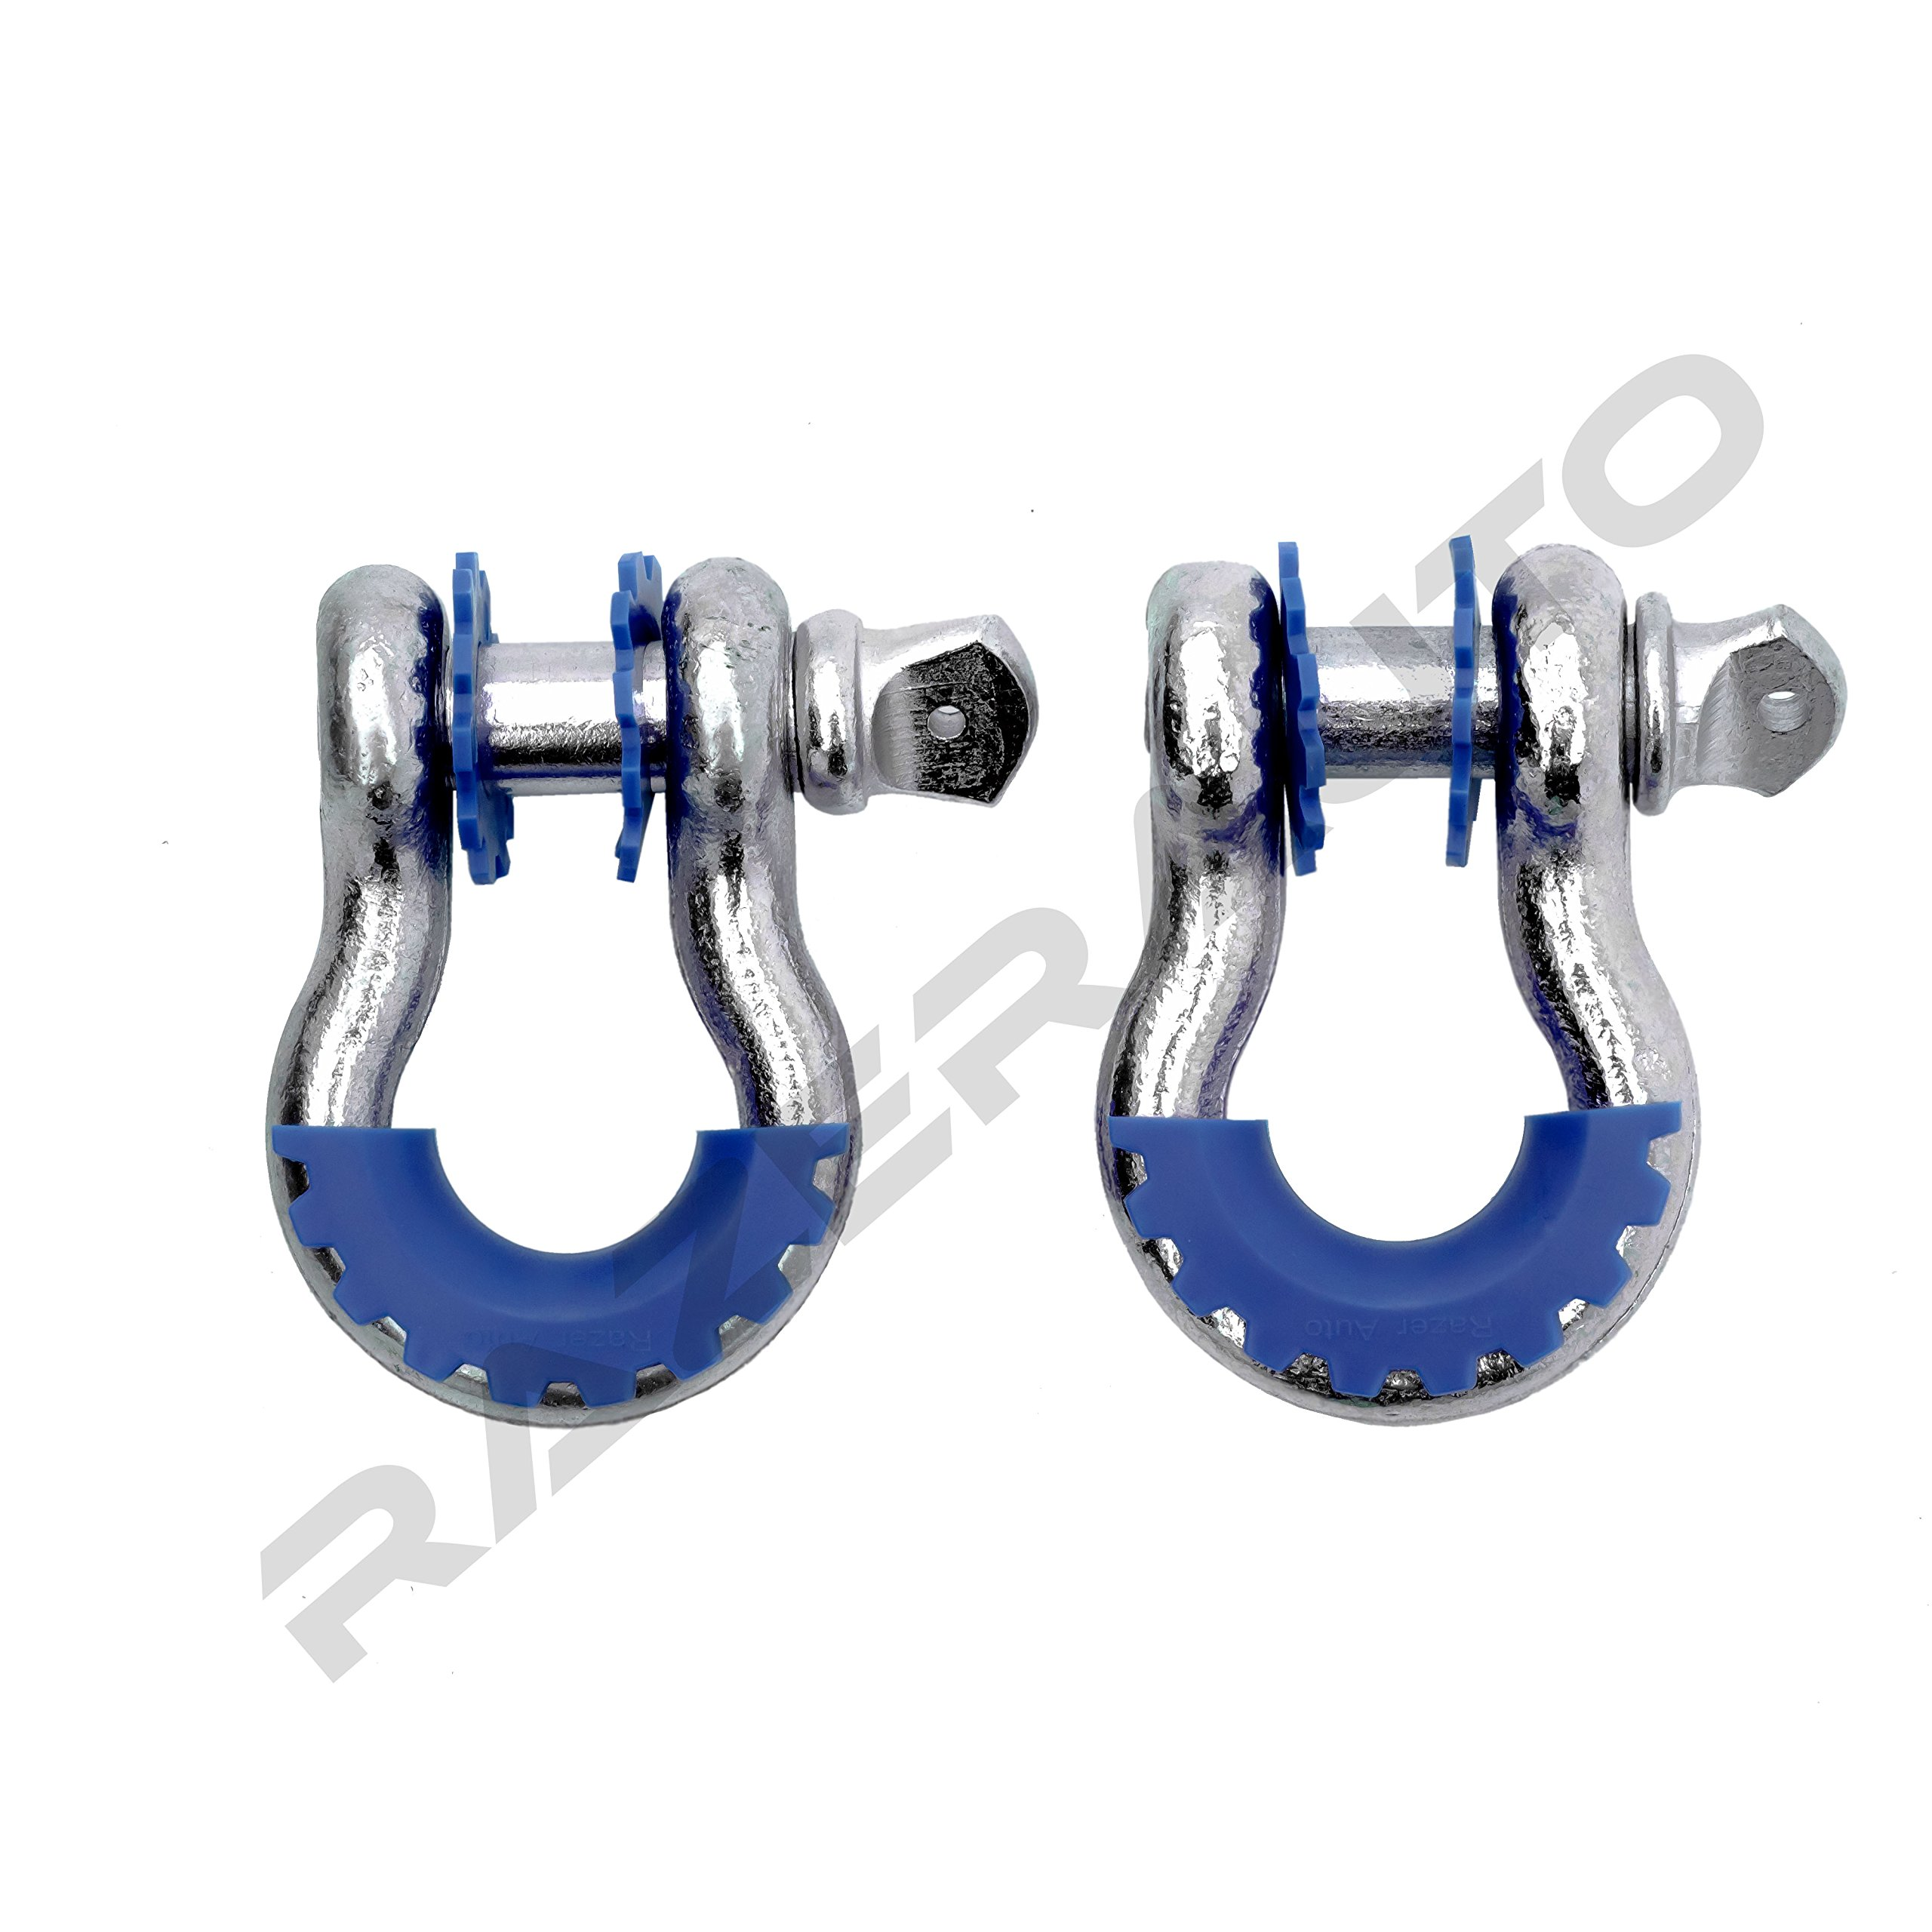 Razer Auto 1 Pair of Silver D-Rings Shackle with Blue Isolator & Washers Gear Design Rattling Protection Cover (Silver/Blue)